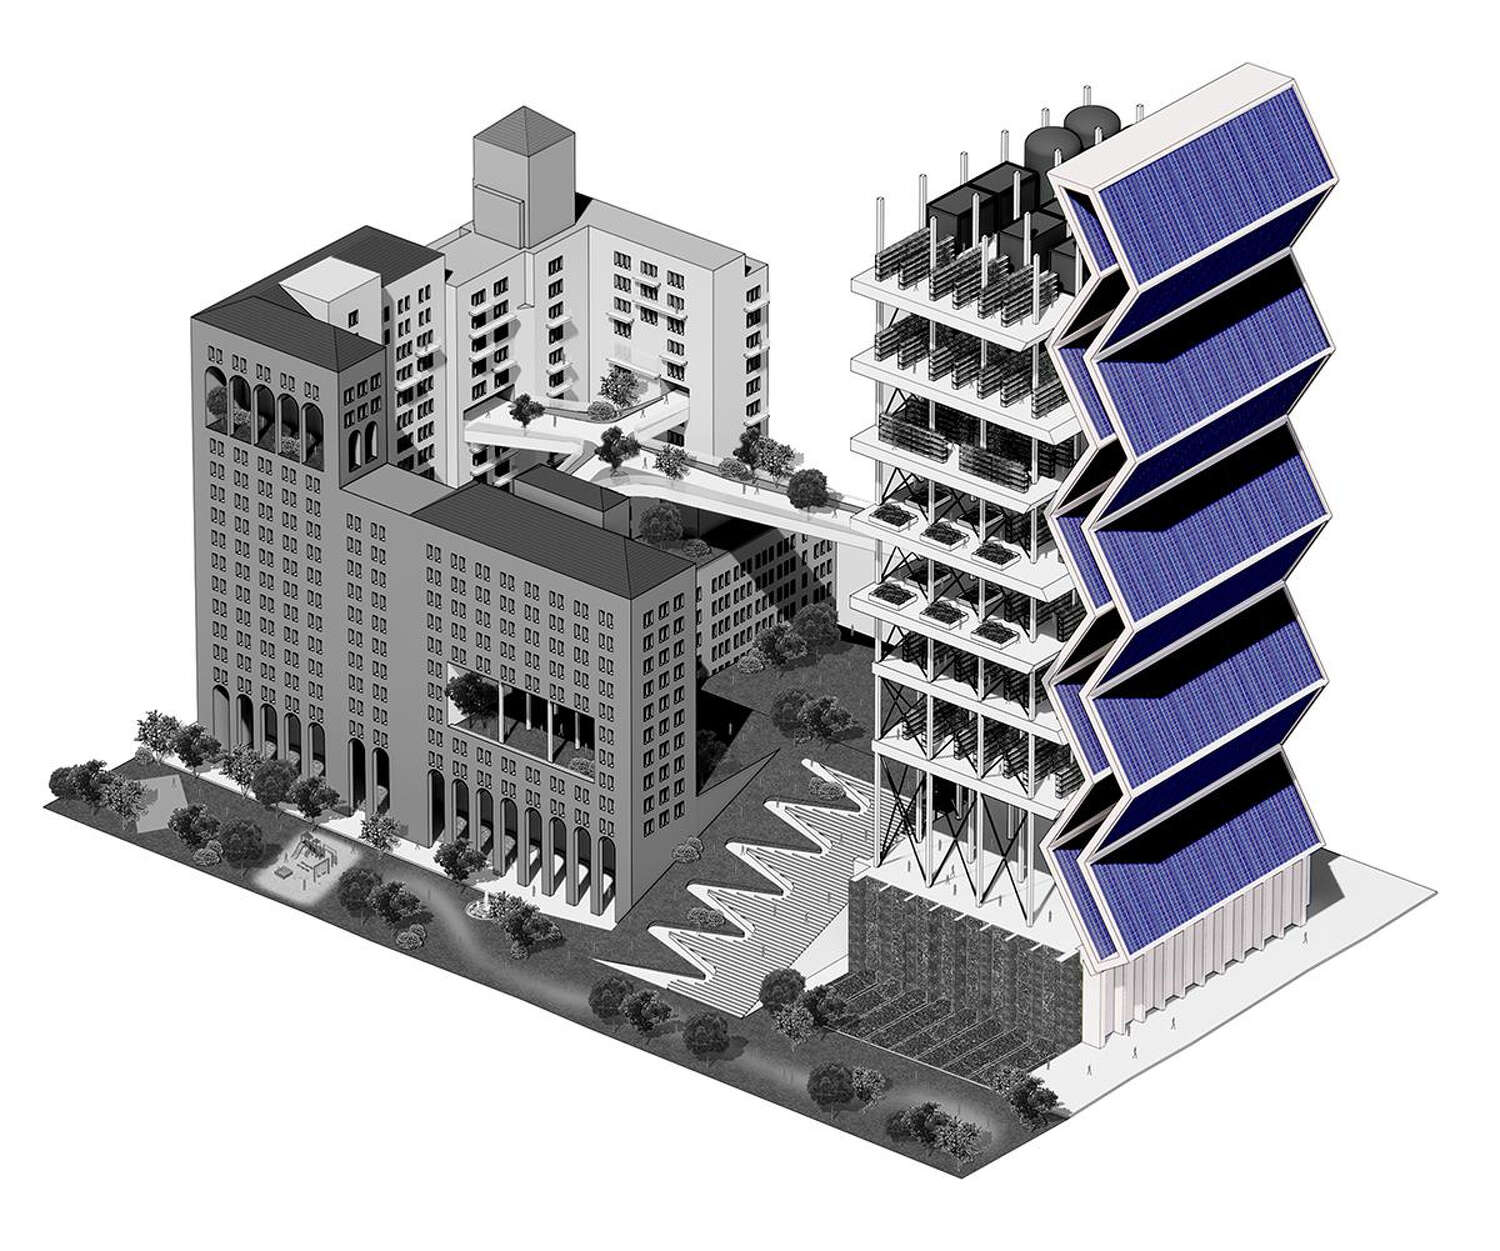 In the foreground of the rendering, the tower of solar panels is highlighted.